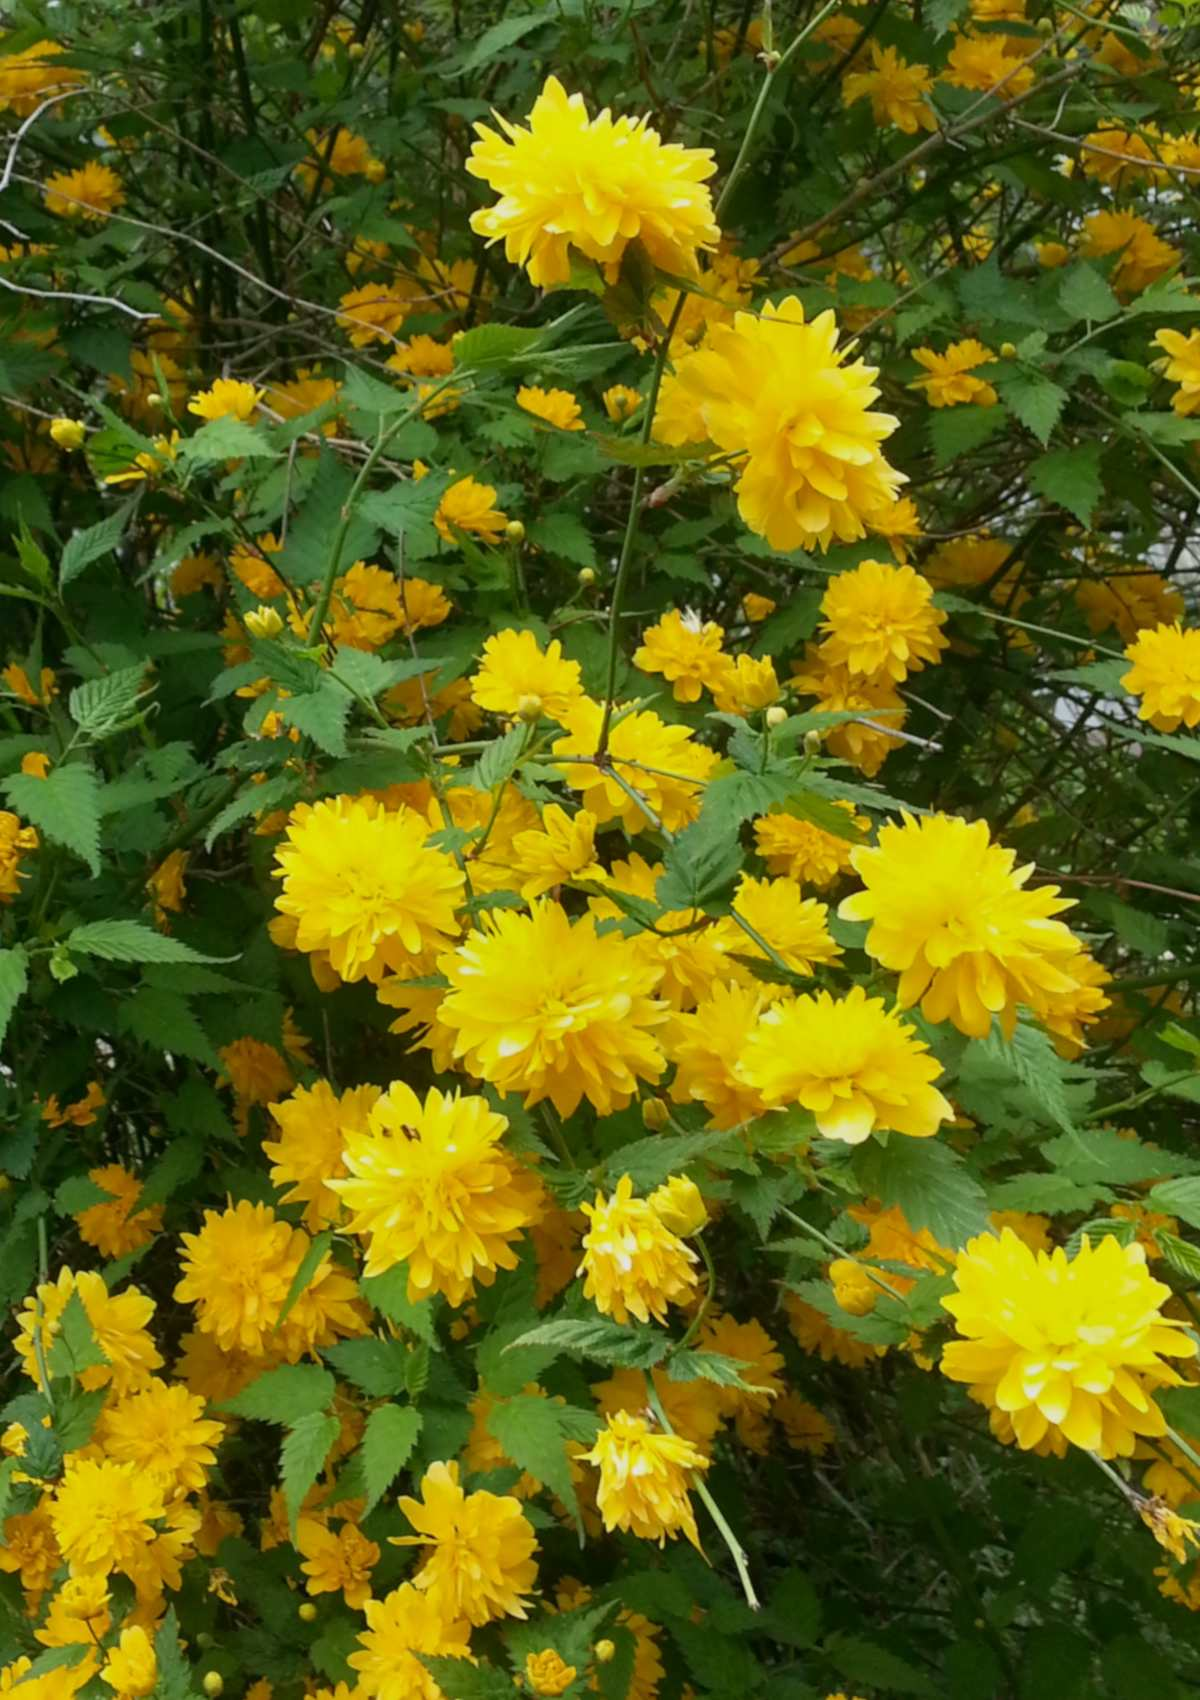 Kerria, an easy shrub that blooms in full yellow